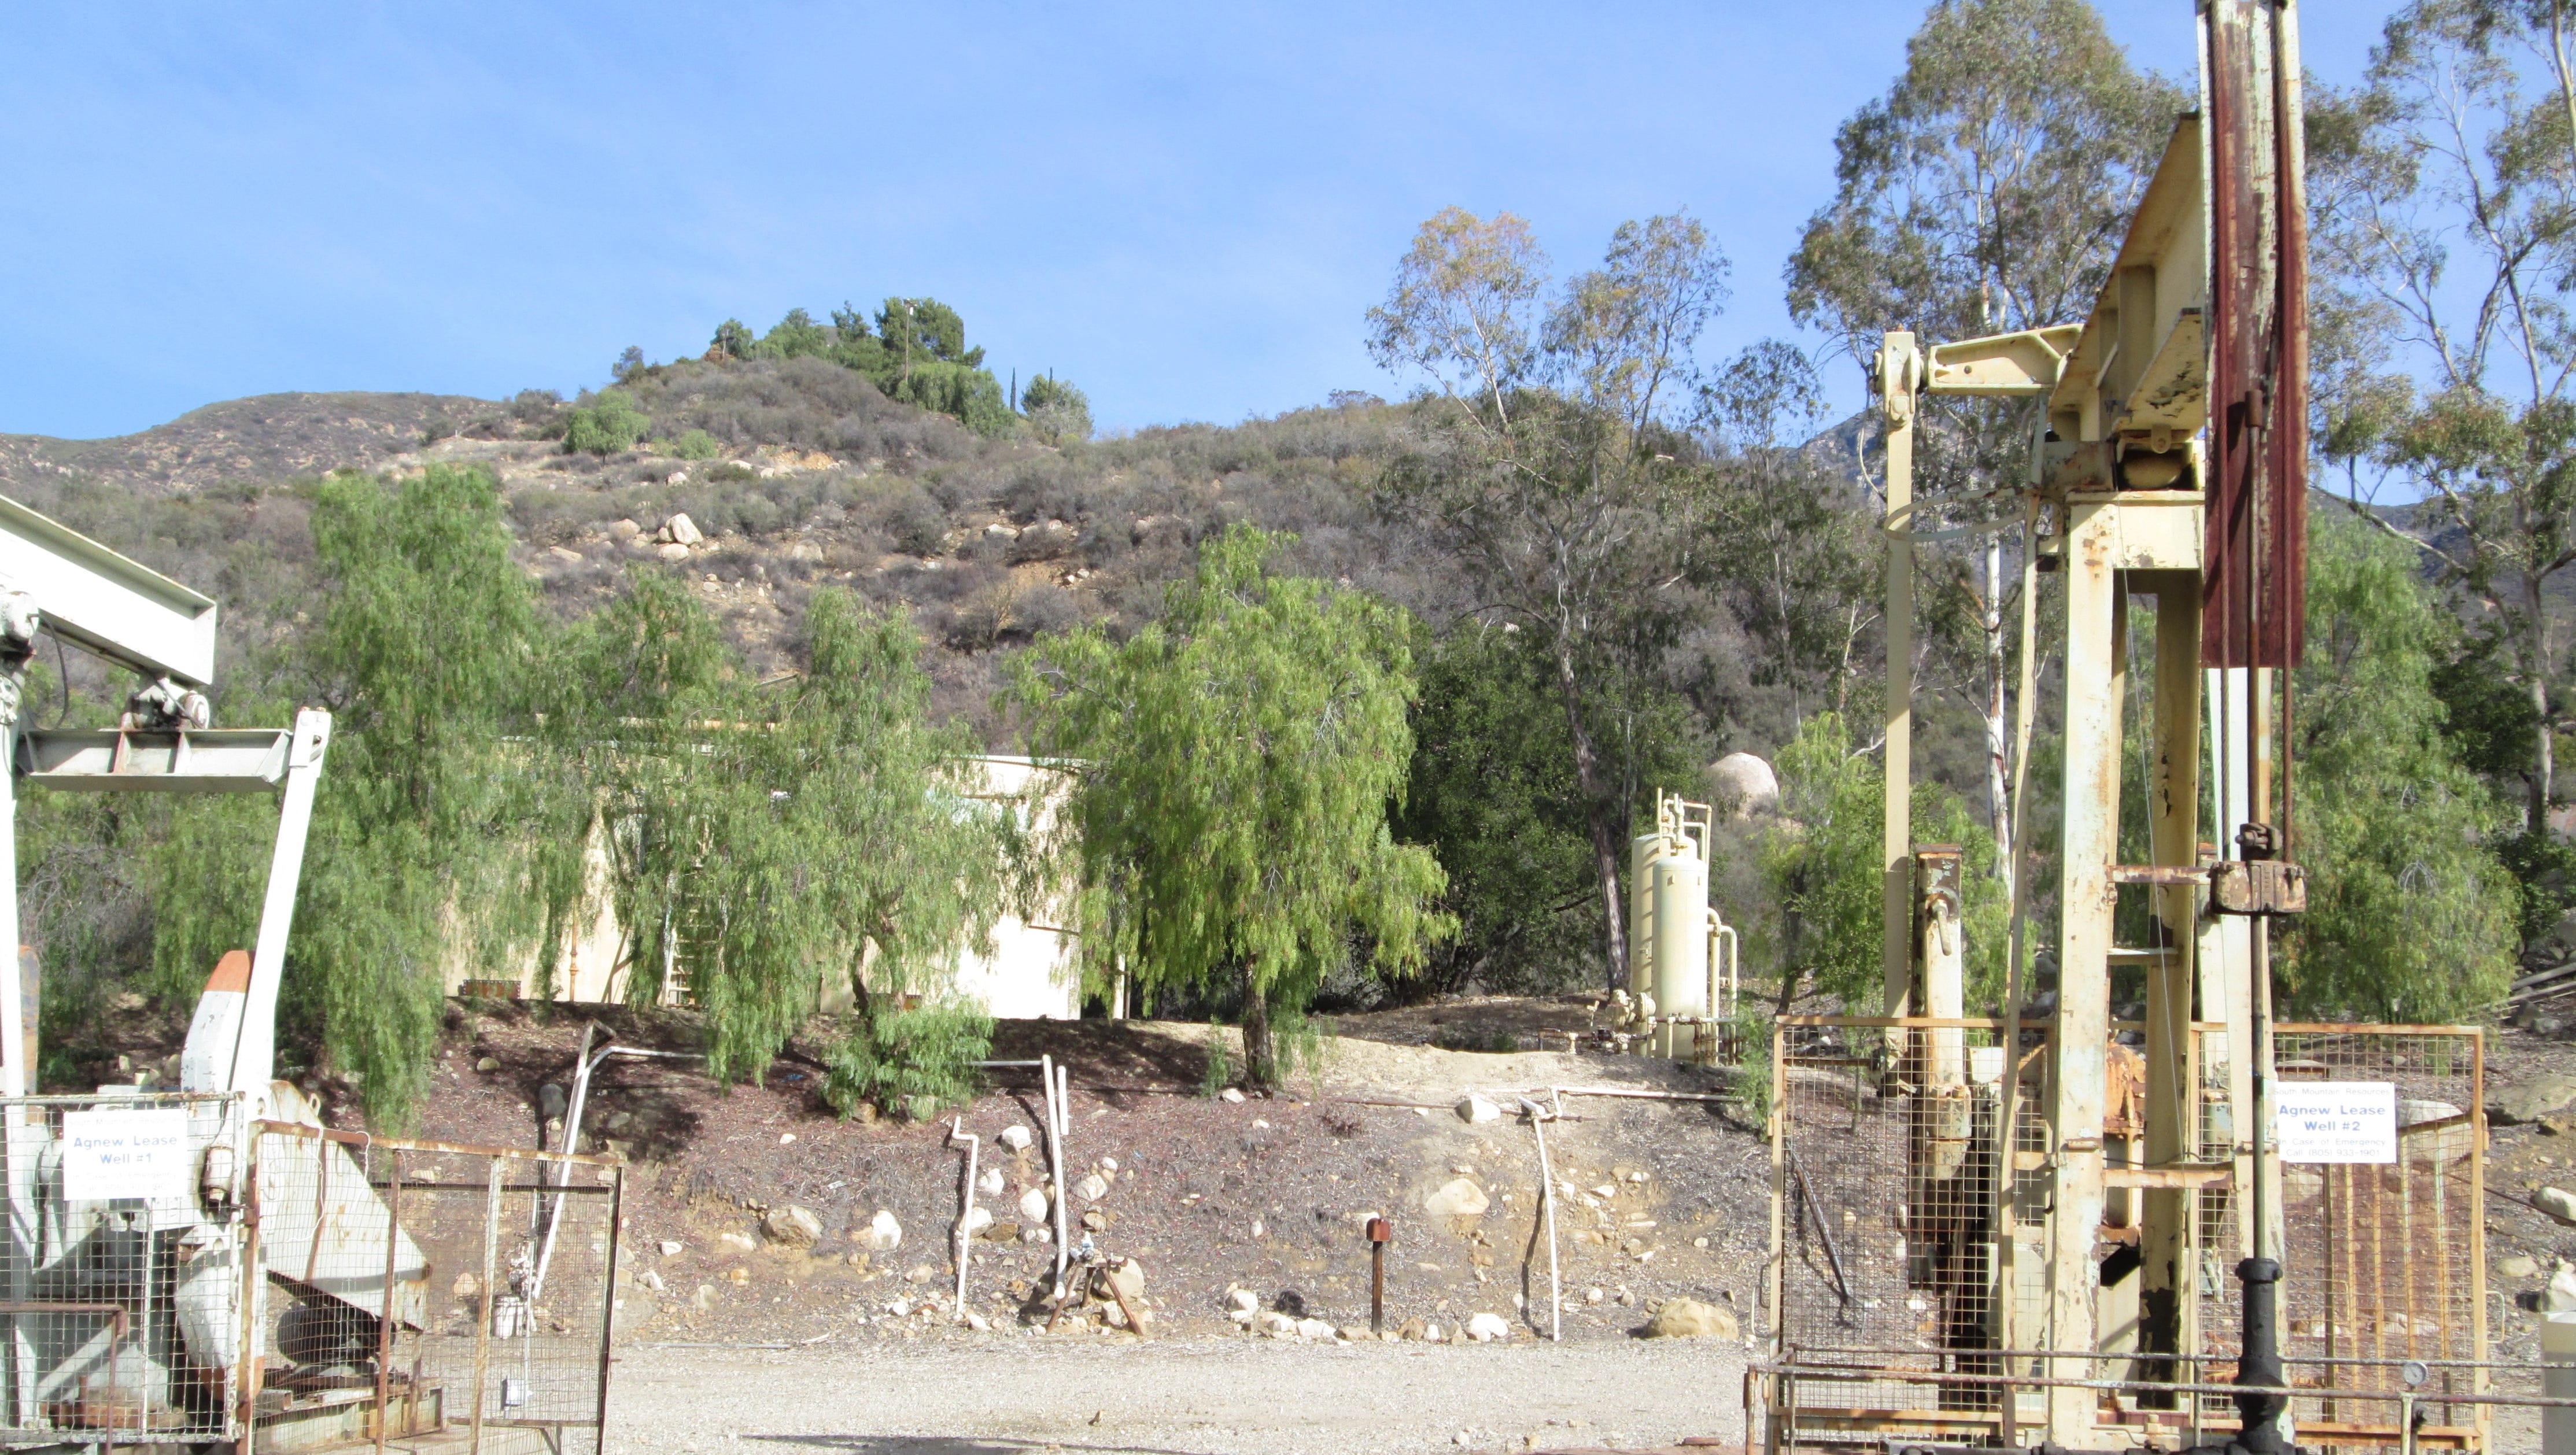 Board delays Upper Ojai Valley oil project, likely dooming it